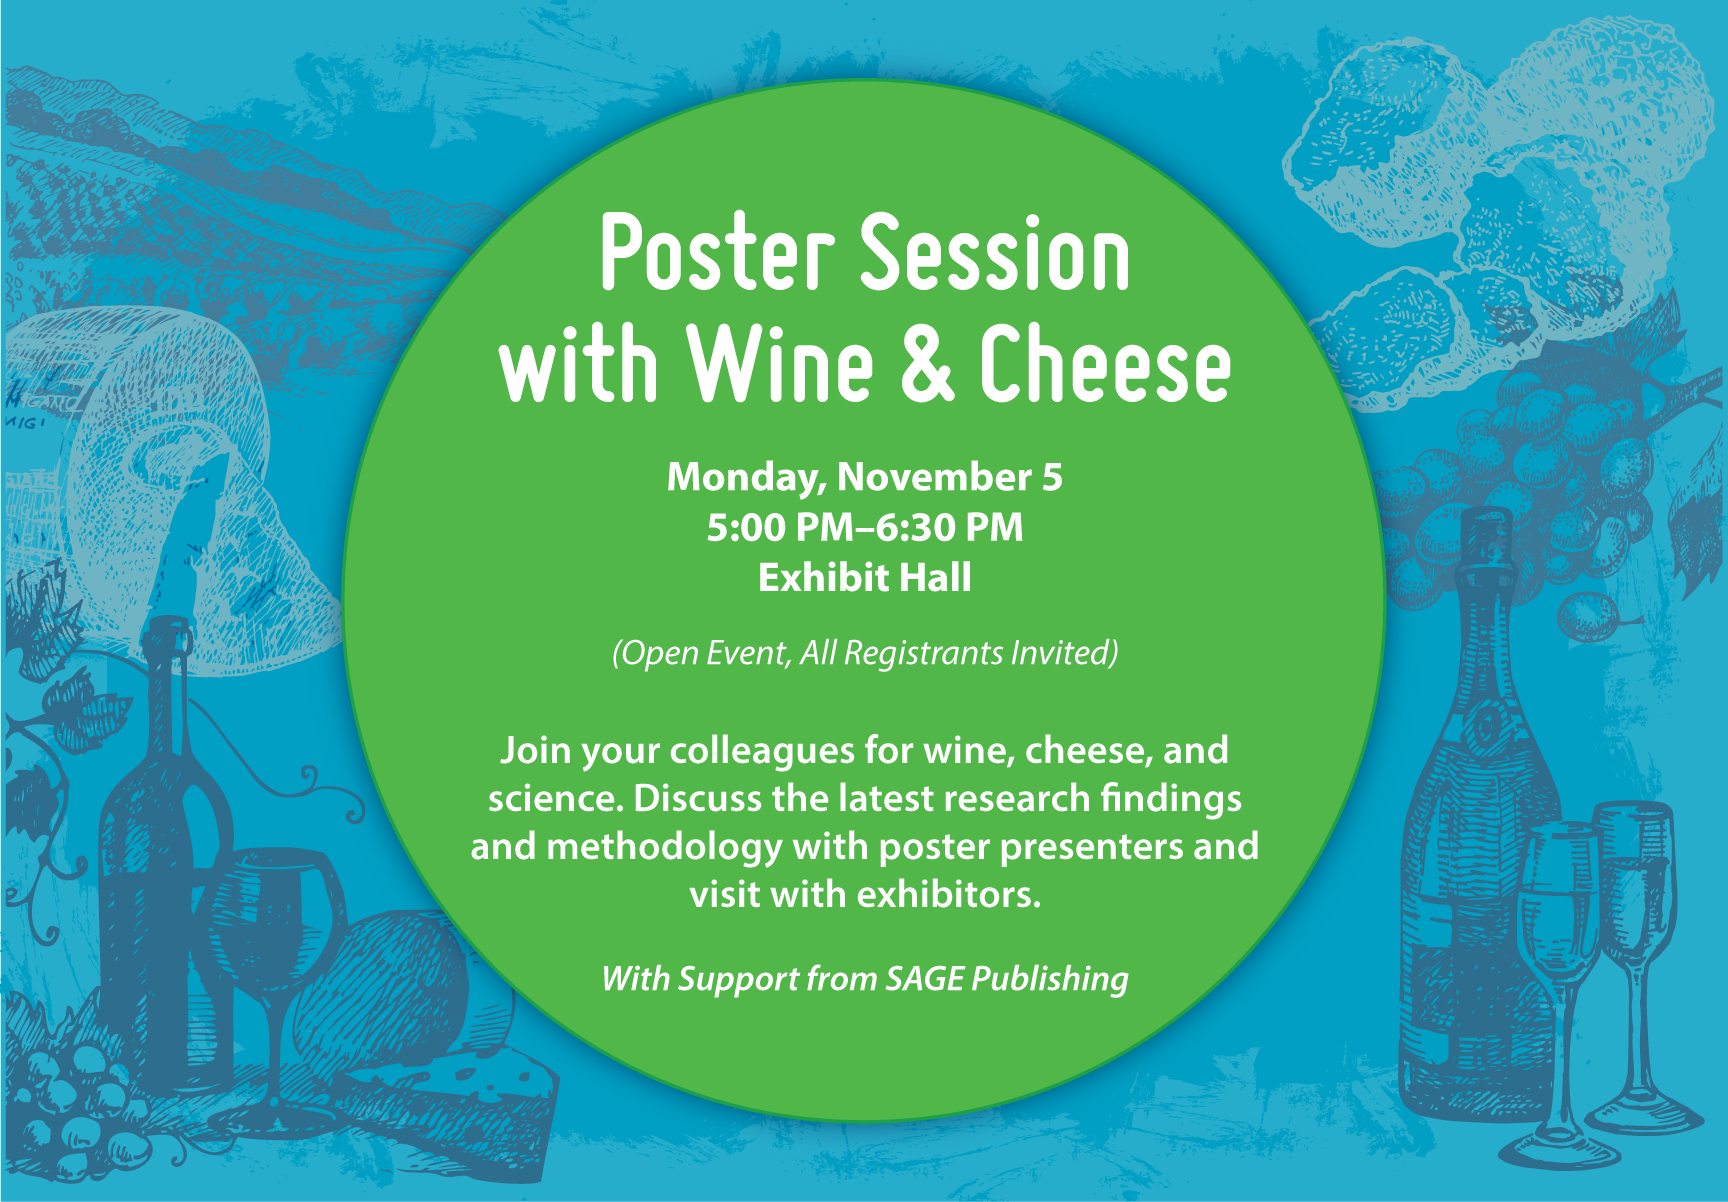 Poster Session with Wine and Cheese - Monday, November 5, 2018 -